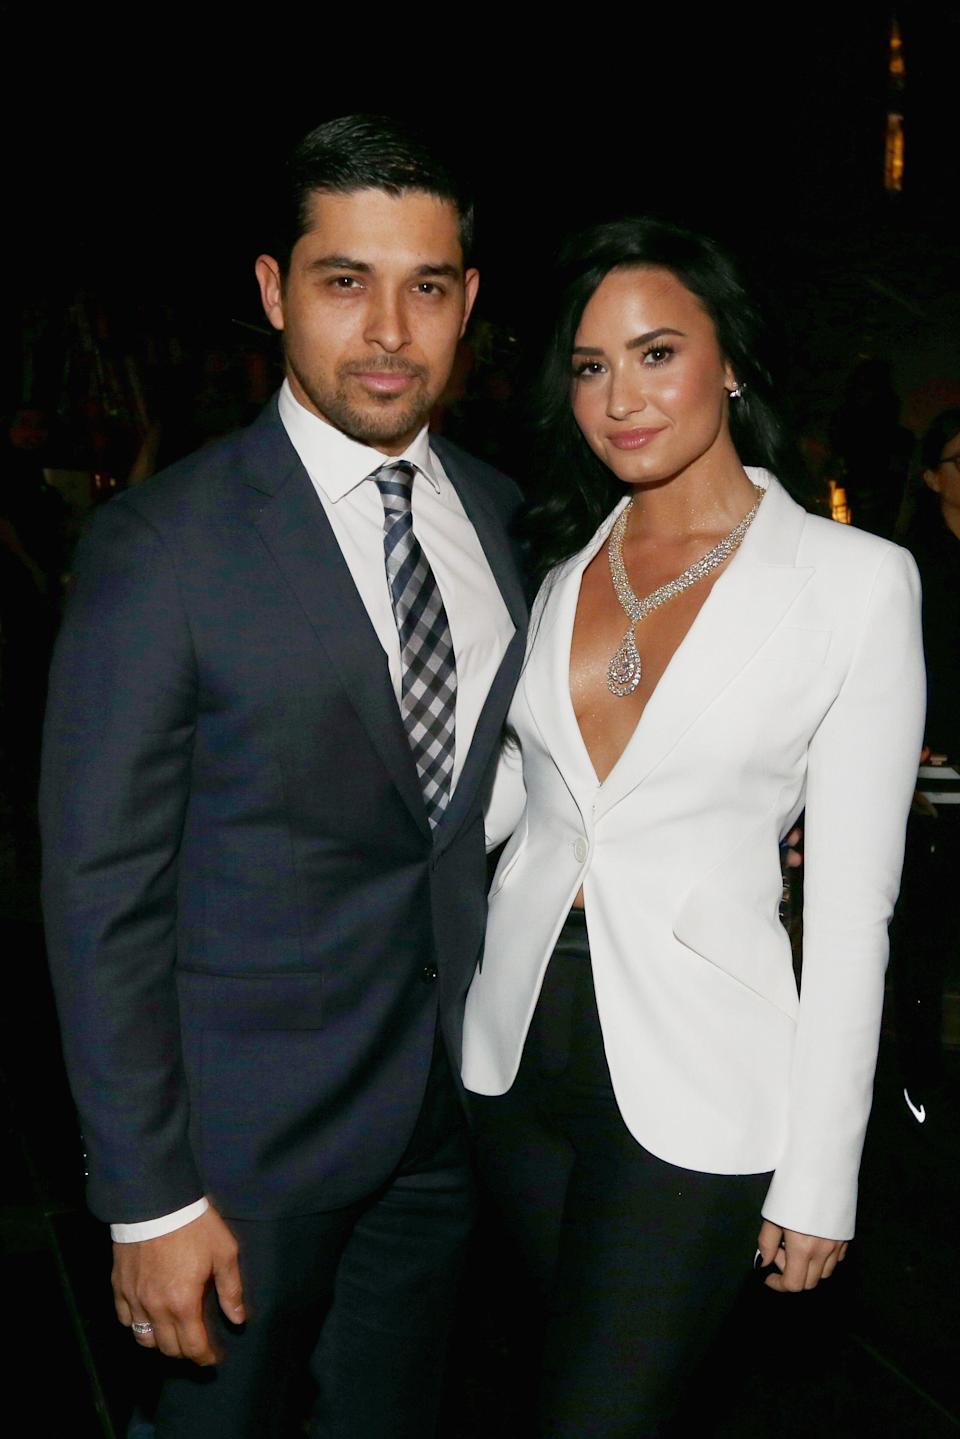 """<p>These days, Demi Lovato is exploring the pursuit of self-love with their new song, """"Anyone."""" But they've also sung about their previous romantic relationships, from <em>Camp Rock </em>co-star Joe Jonas to longtime love Wilmer Valderrama. During a 2018 <a href=""""http://www.instyle.com/celebrity/demi-lovato-april-cover"""" rel=""""nofollow noopener"""" target=""""_blank"""" data-ylk=""""slk:InStyle"""" class=""""link rapid-noclick-resp""""><em>InStyle</em></a> interview, Lovato said they feel confident when <a href=""""https://www.elle.com/culture/celebrities/a19160999/demi-lovato-on-making-first-move-instyle/"""" rel=""""nofollow noopener"""" target=""""_blank"""" data-ylk=""""slk:looking for a relationship"""" class=""""link rapid-noclick-resp"""">looking for a relationship</a>. """"I'm normally the first one to make the move,"""" they said. """"I'm always the one who says, 'Let me get your number.' Or I slide into their DMs on Instagram."""" Below, a history of Lovato's loves, those pursued and otherwise. </p>"""